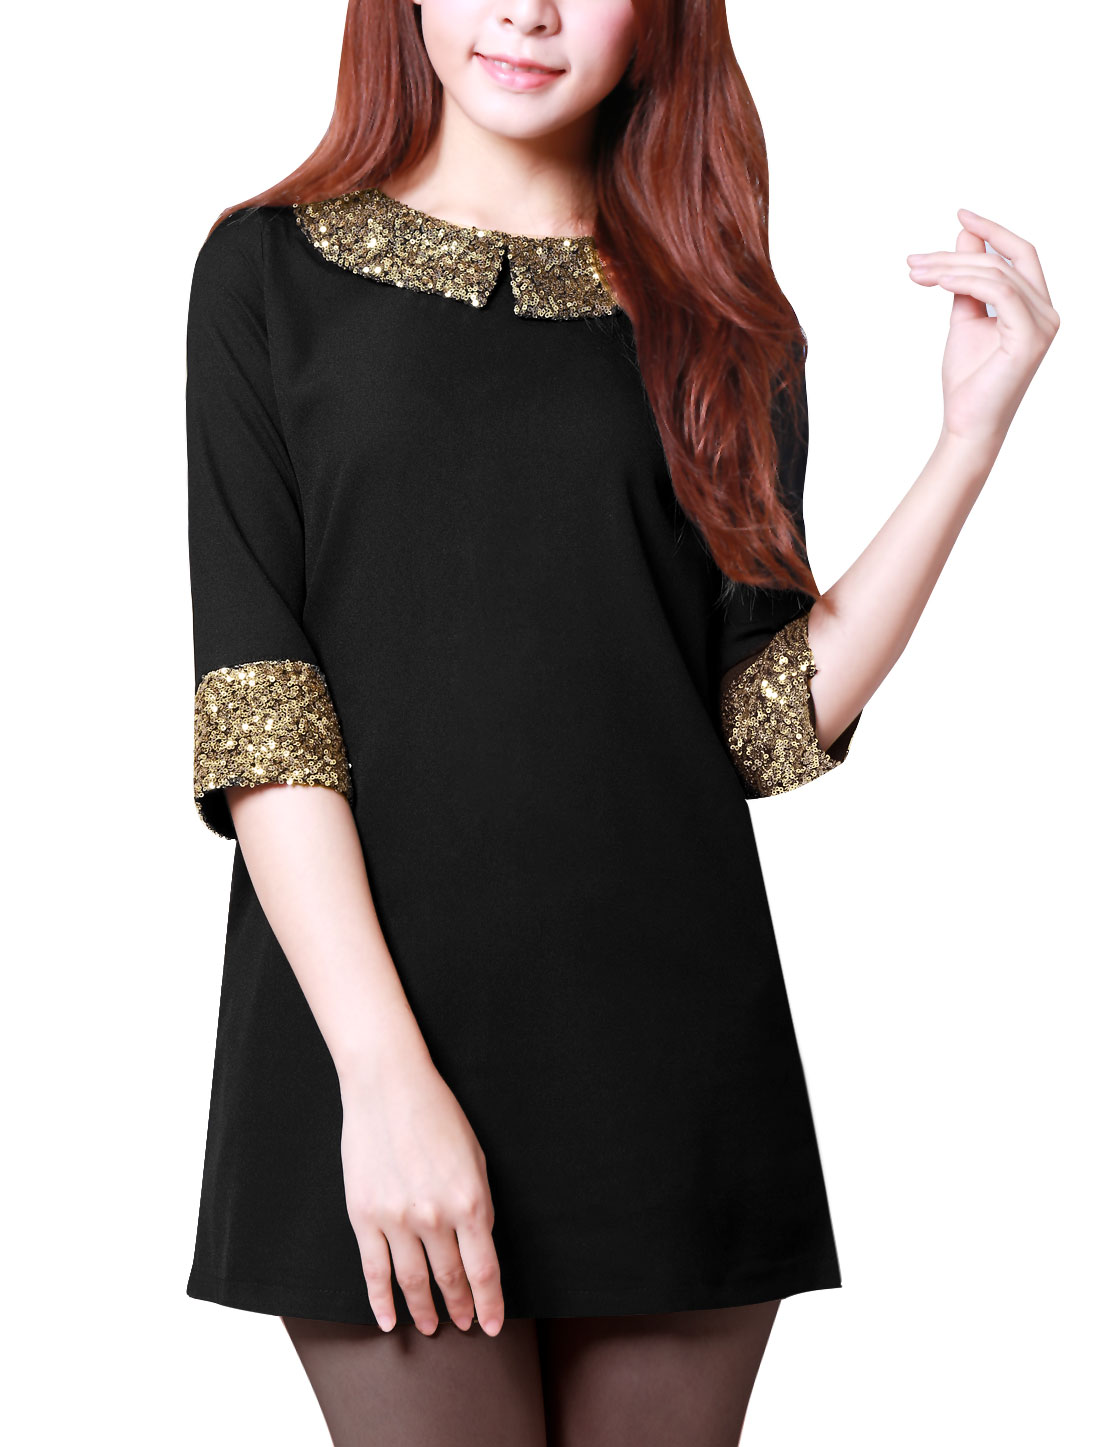 Women's Point Collar Sequin Decor 3/4 Sleeve Zip Back Black S Dress